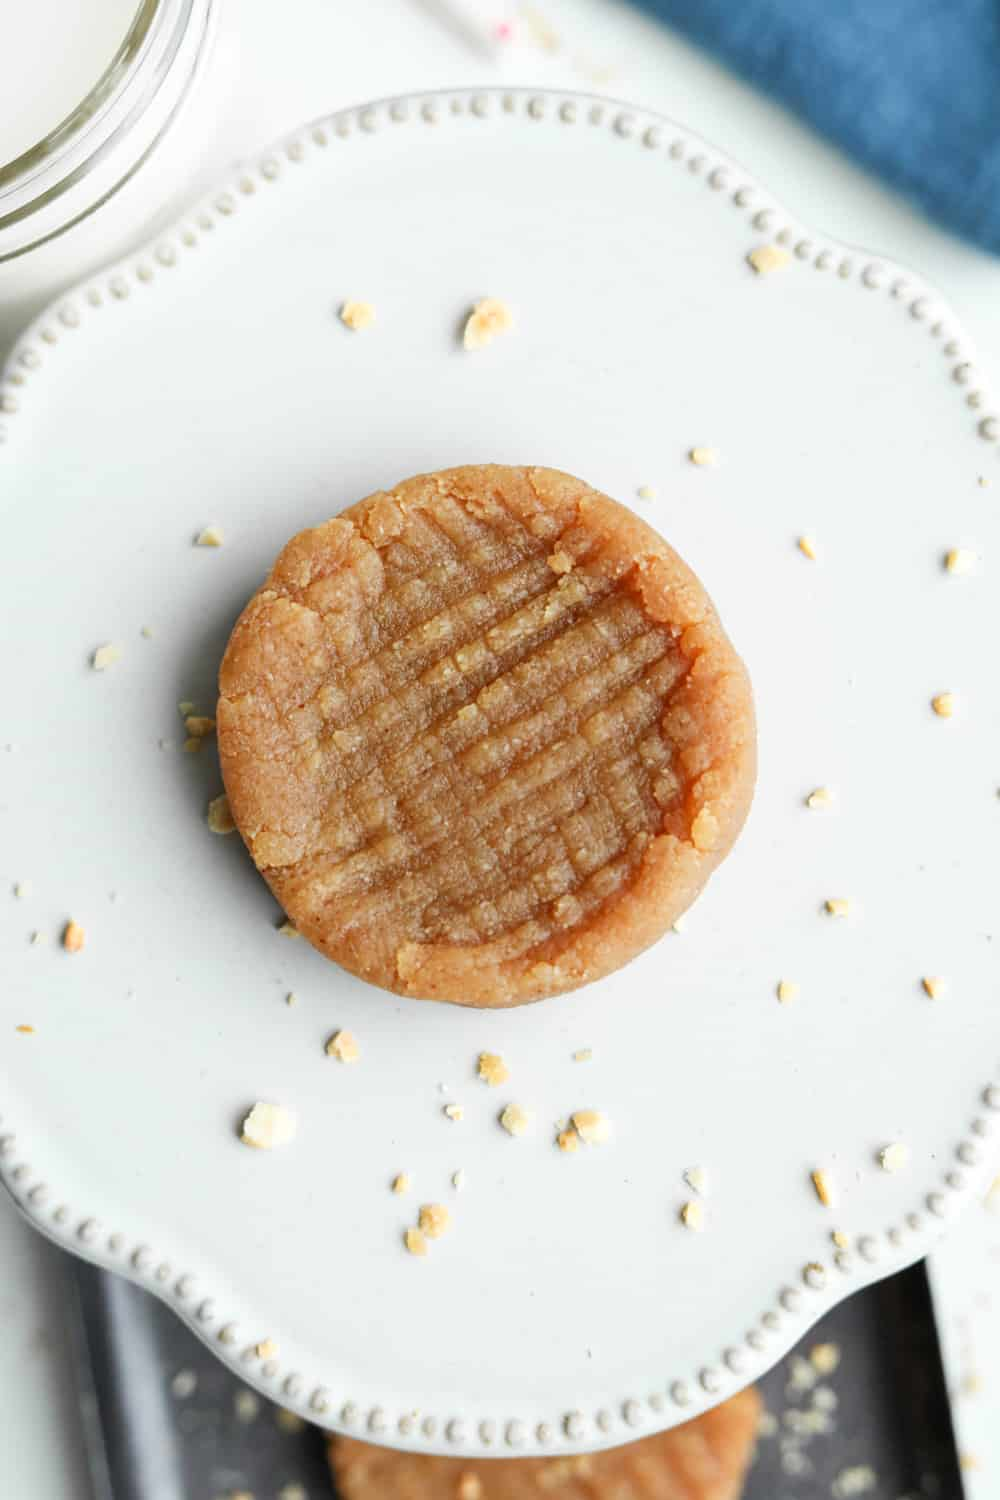 A peanut butter cookie on a plate.